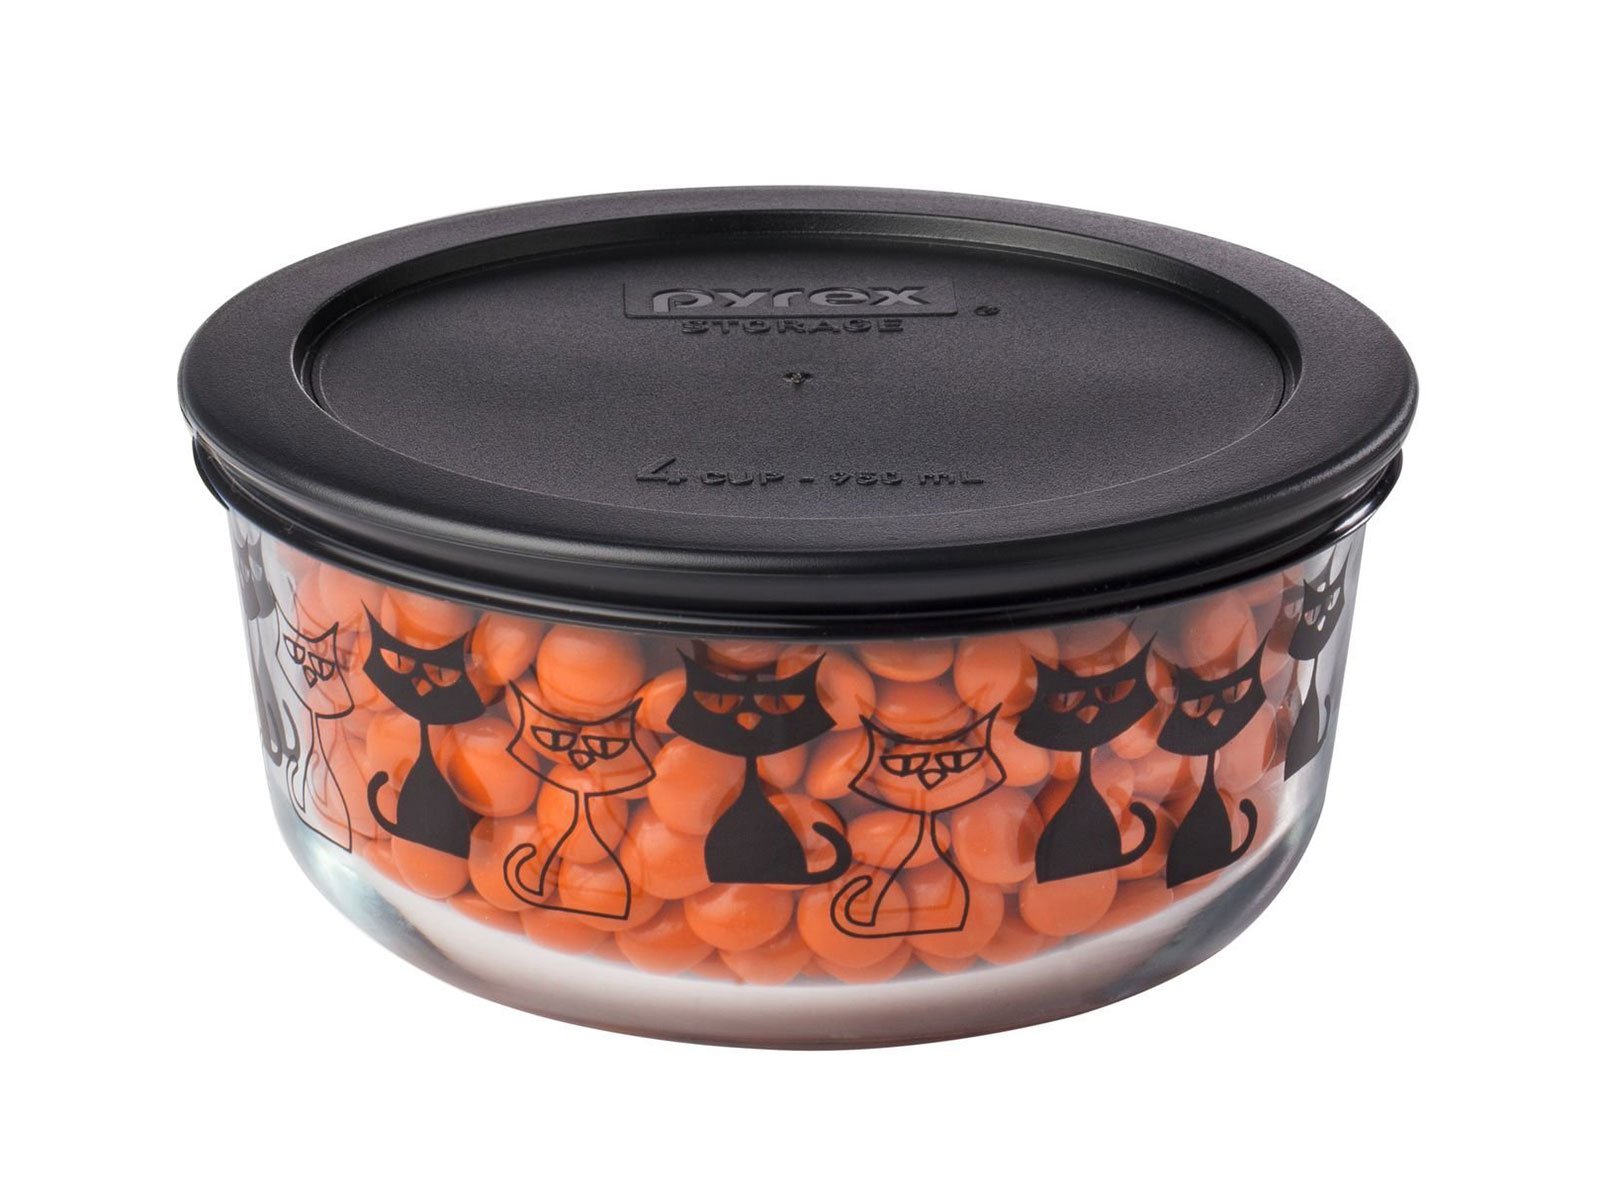 plastic containers with black cats